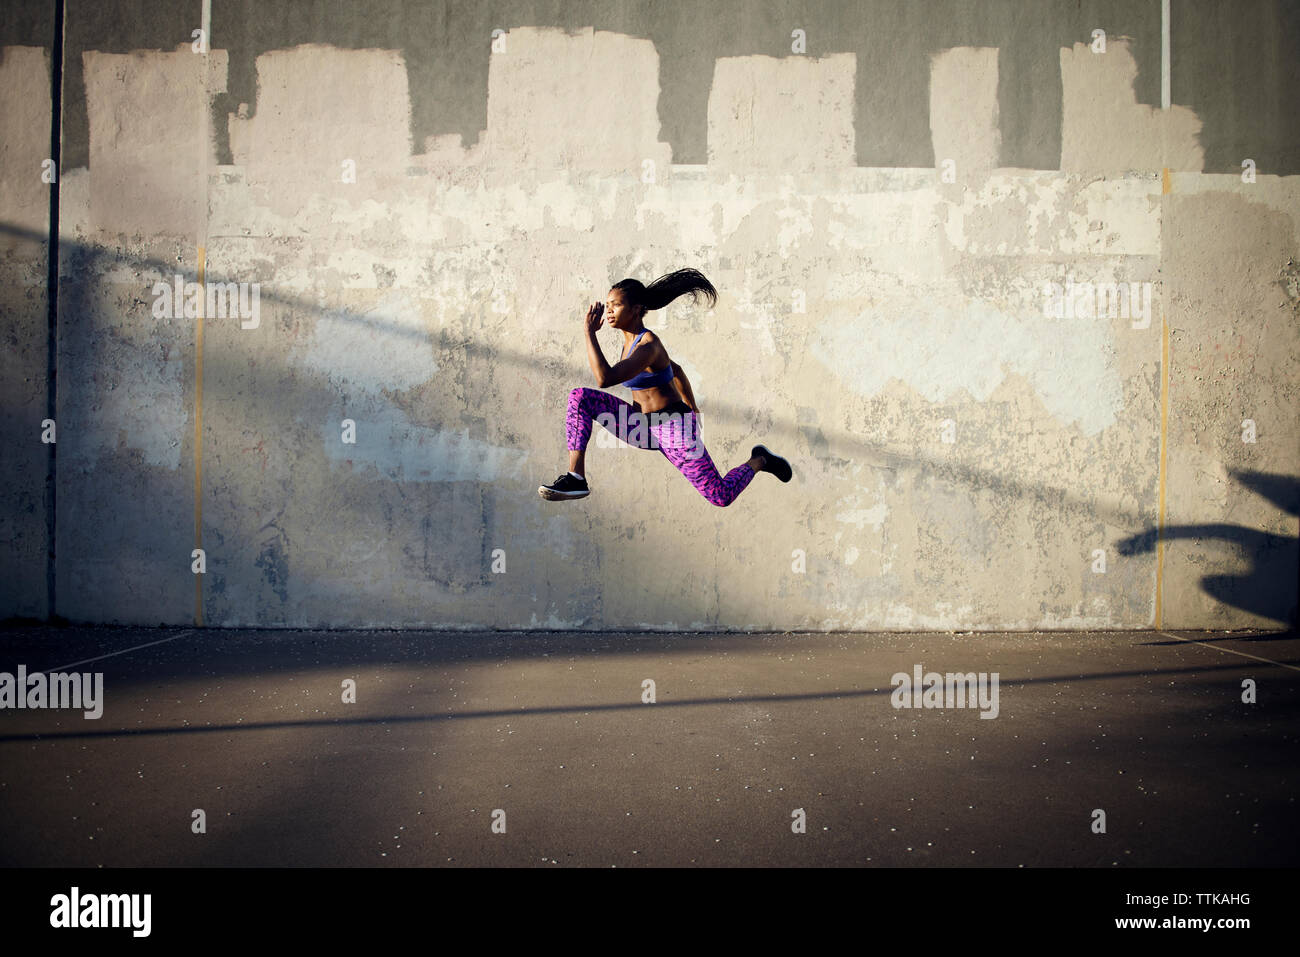 Side view of sportswoman jumping in mid-air against wall - Stock Image